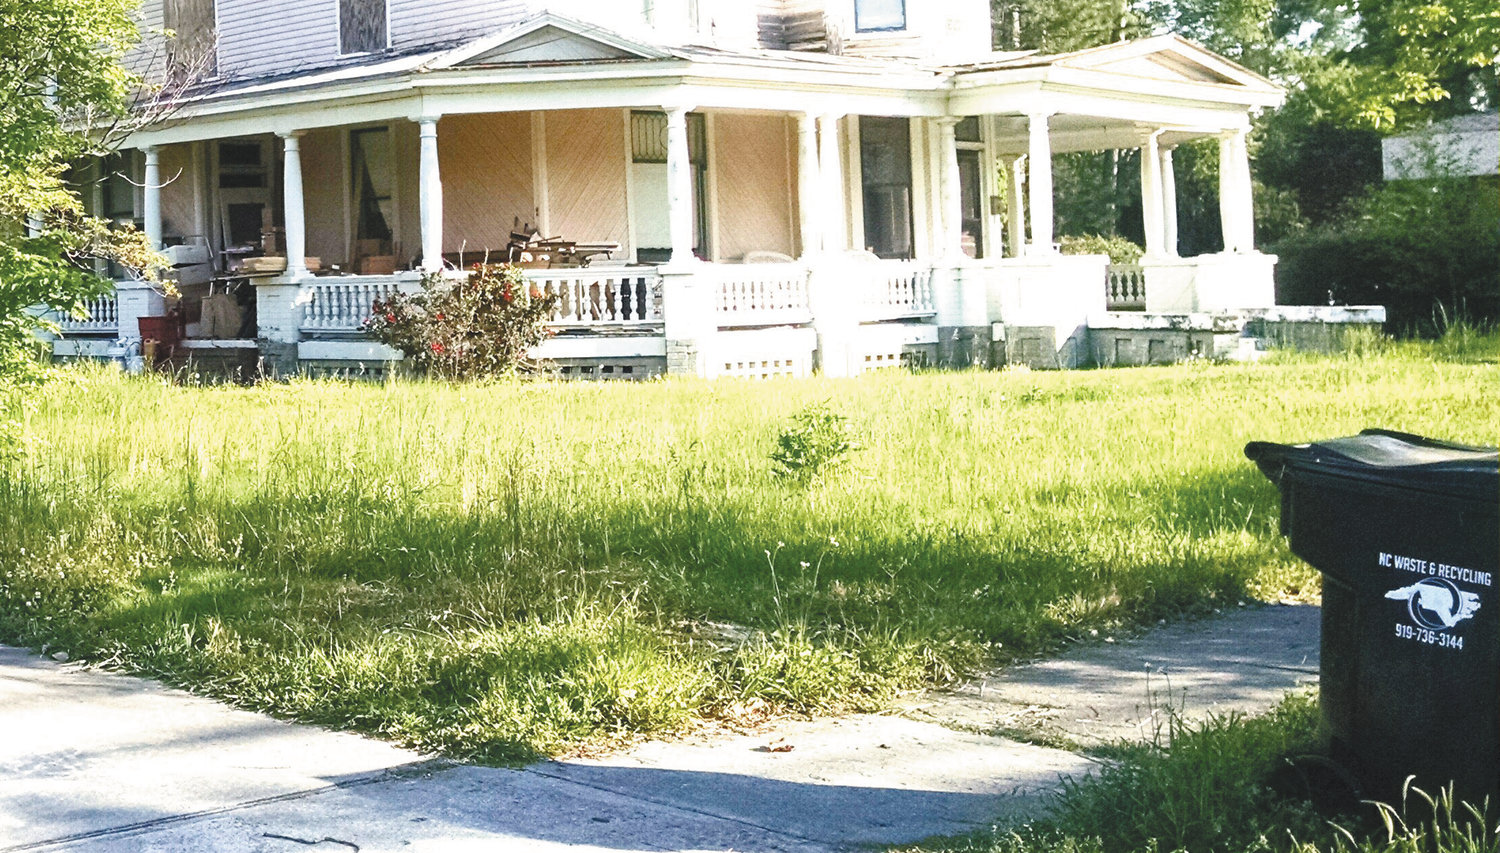 The town of Mount Olive no longer cuts weeded lots. Violators will be fined and repeat offenders could lose their land, according to a new weeded lot policy. This photo, taken of a property on North Chestnut Street in April, is shown as an example.